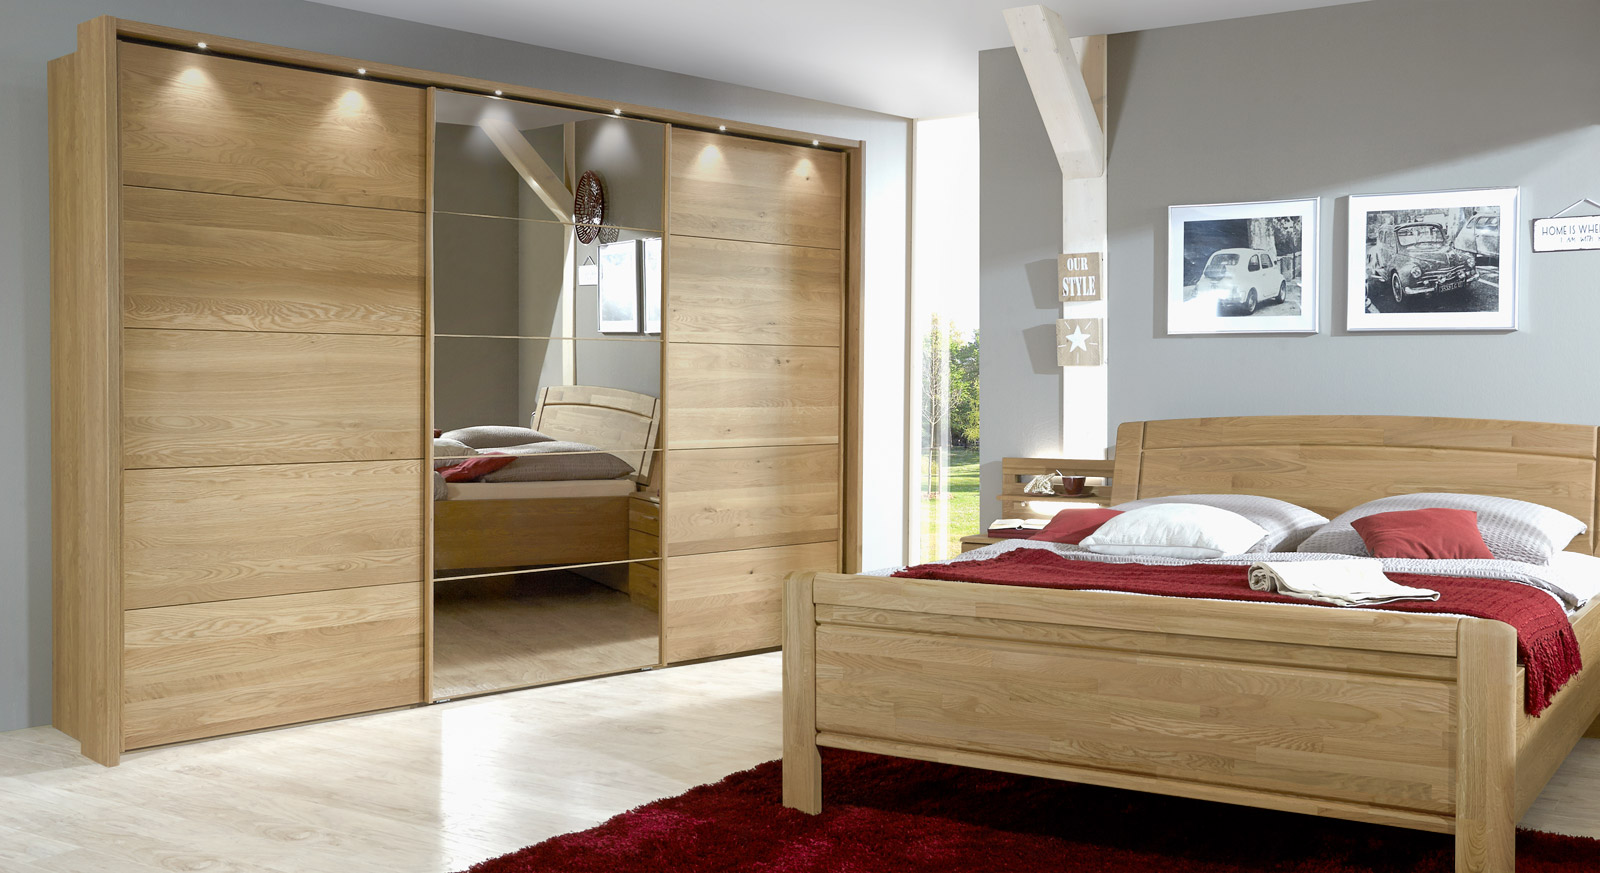 kleiderschrank in eiche mit spiegel und schwebet ren quebo. Black Bedroom Furniture Sets. Home Design Ideas